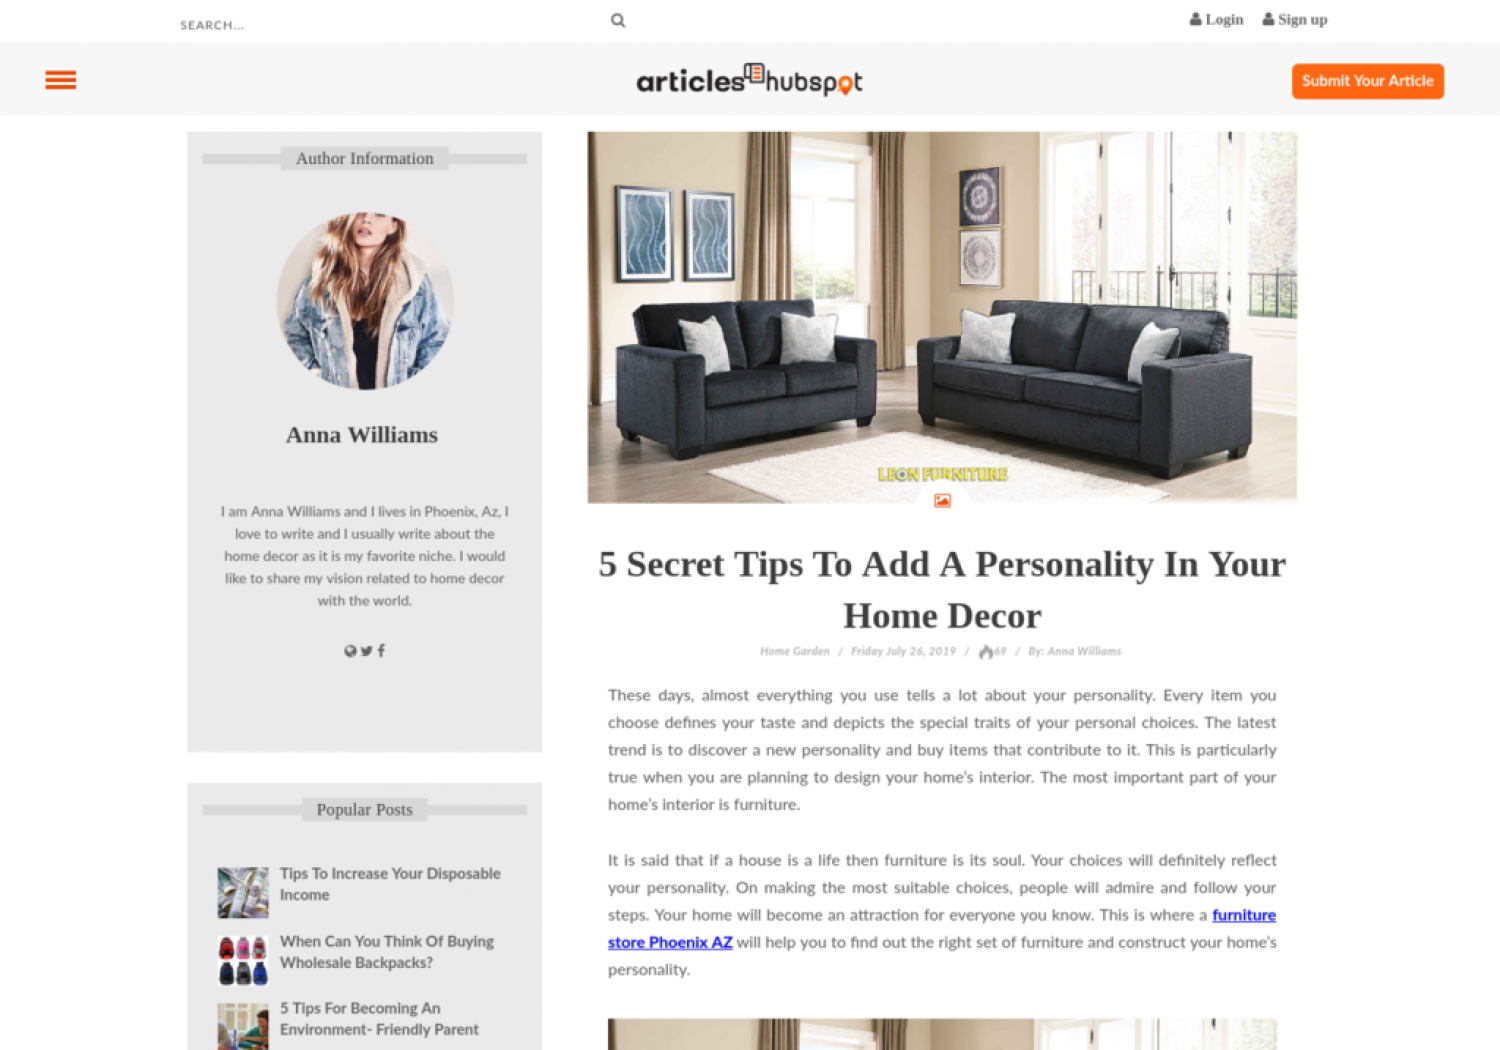 5 Secret Tips To Add A Personality In Your Home Decor Infographic